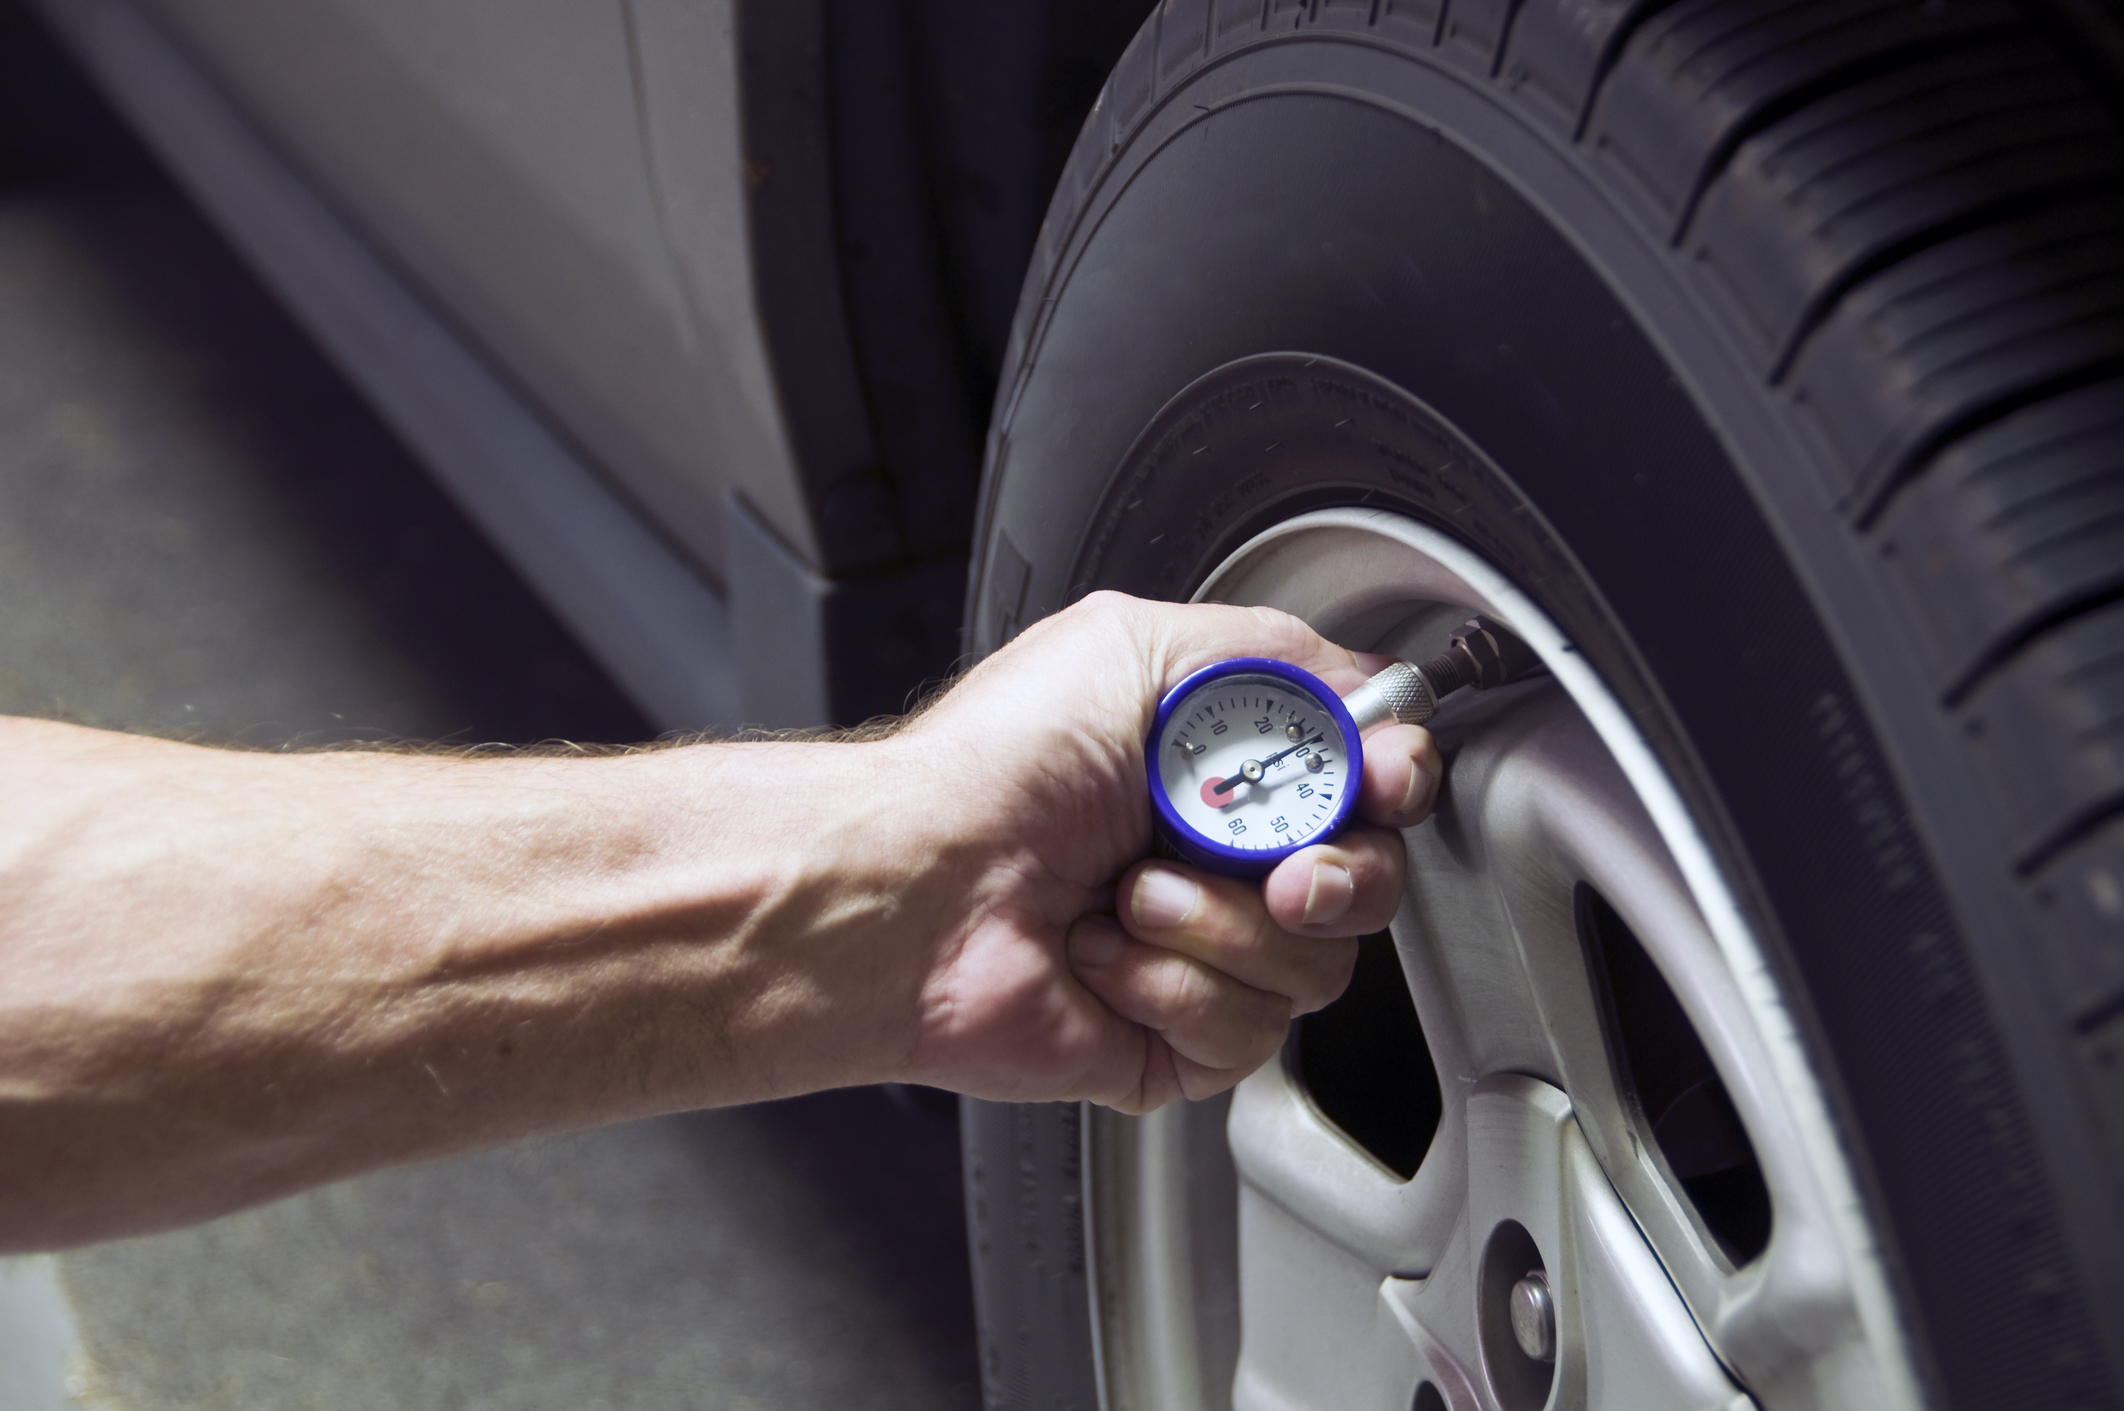 How To: Check Tire Pressure